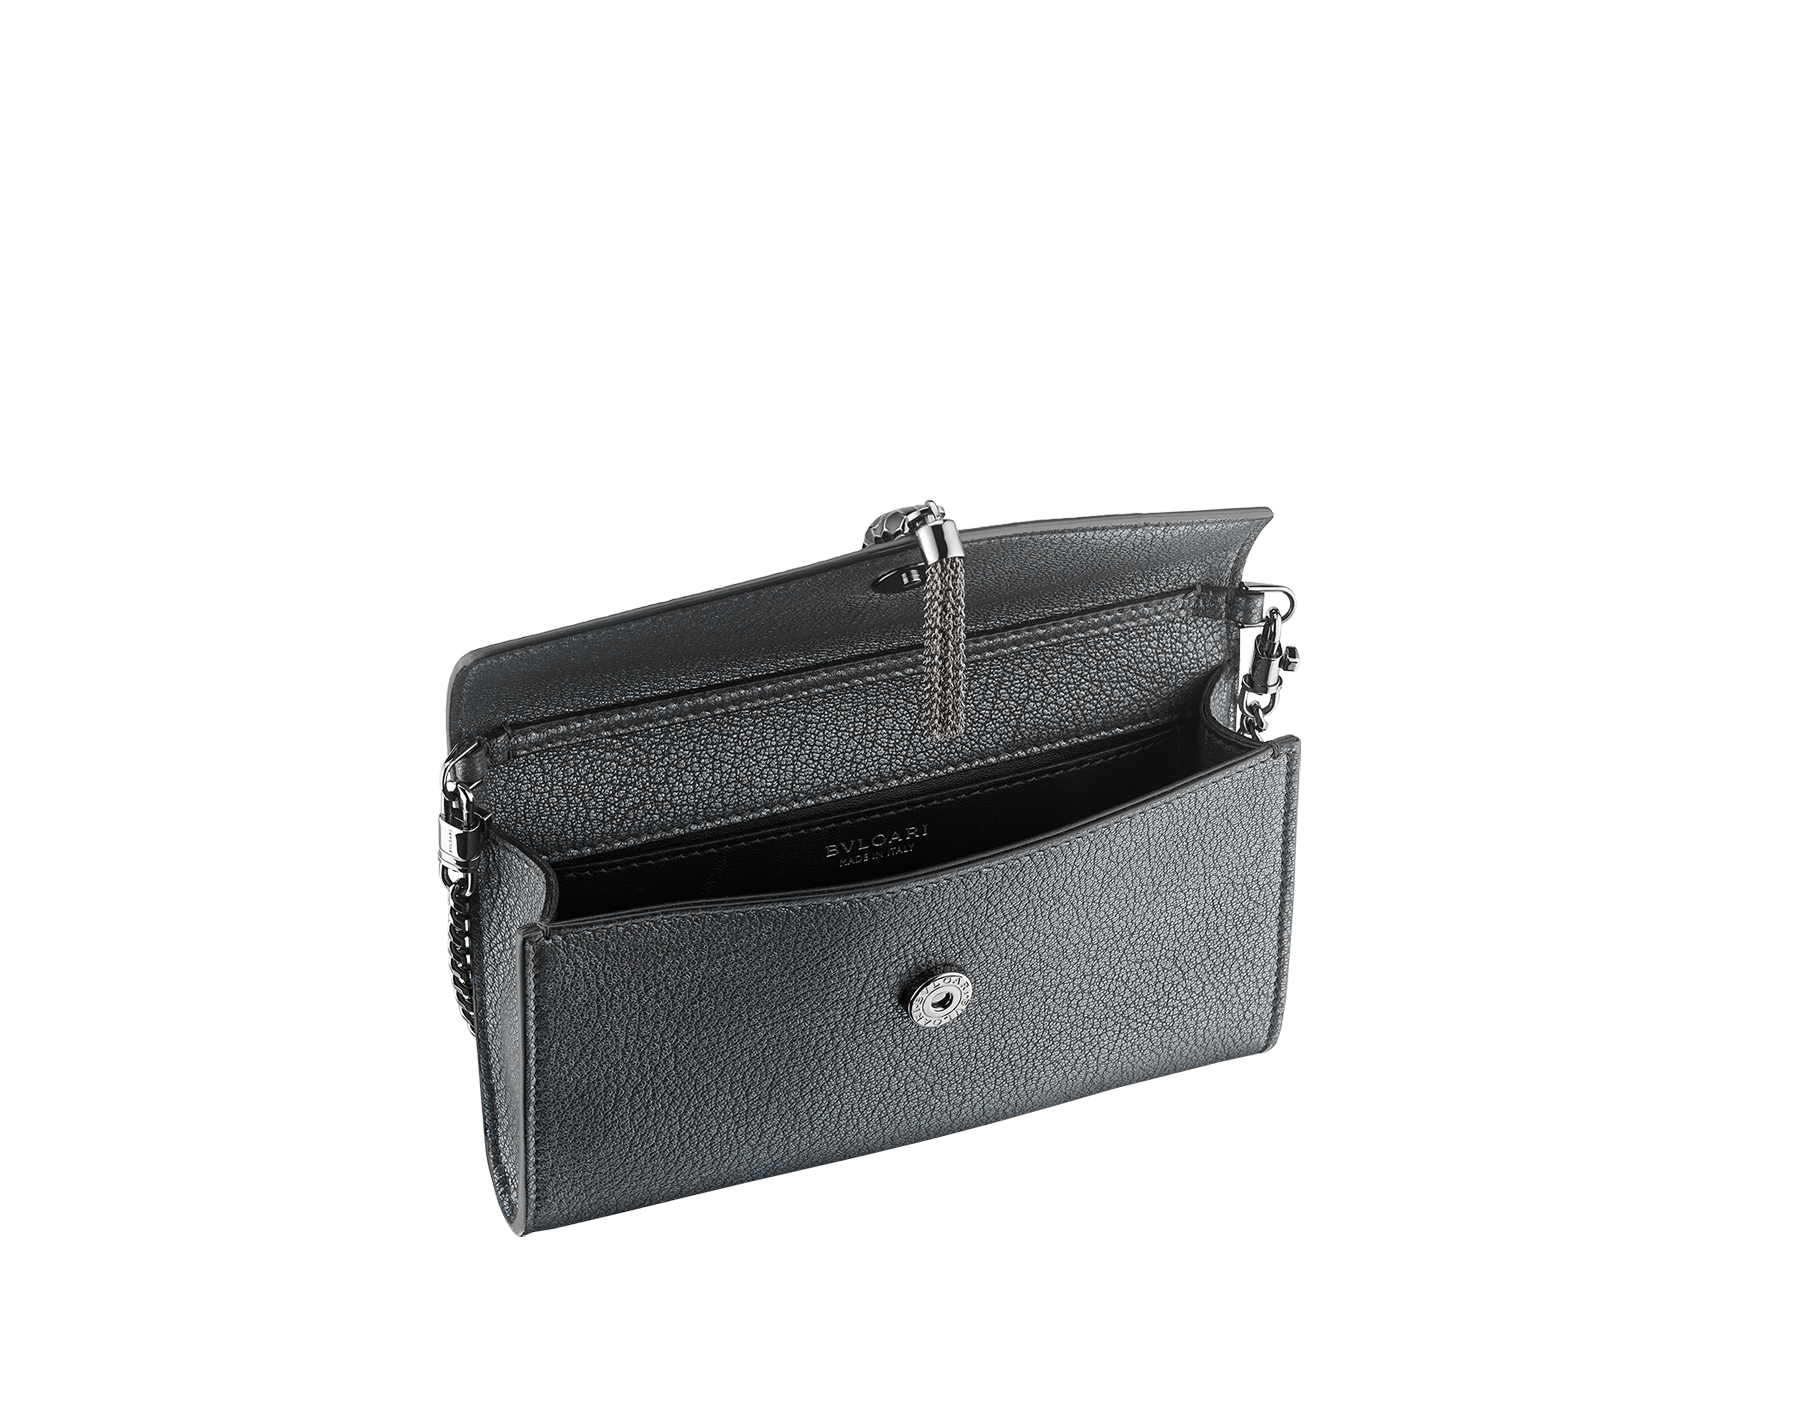 """""""Serpenti Forever"""" small pochette in charcoal diamond goatskin with a pearled effect and black nappa leather. Iconic snakehead stud closure a with tassel in dark ruthenium plated brass, enamelled in matte and shiny black and finished with black enamel eyes. SMALLPOCHETTE-LEATHER image 2"""